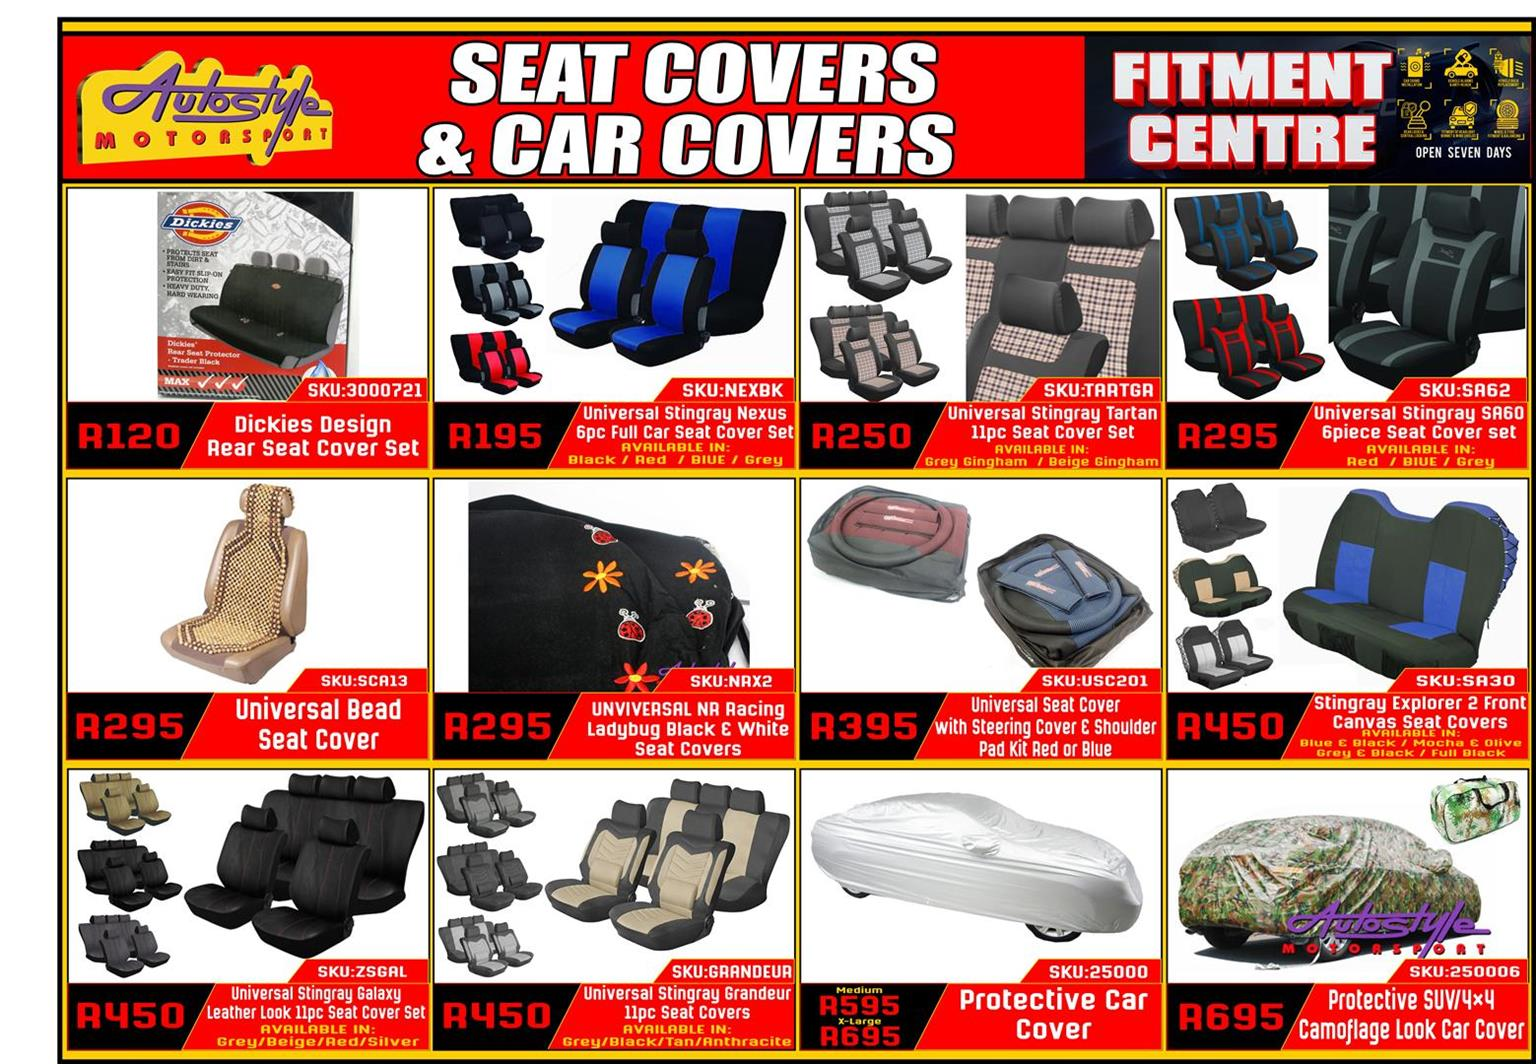 Sear covers, seat protectors, car covers